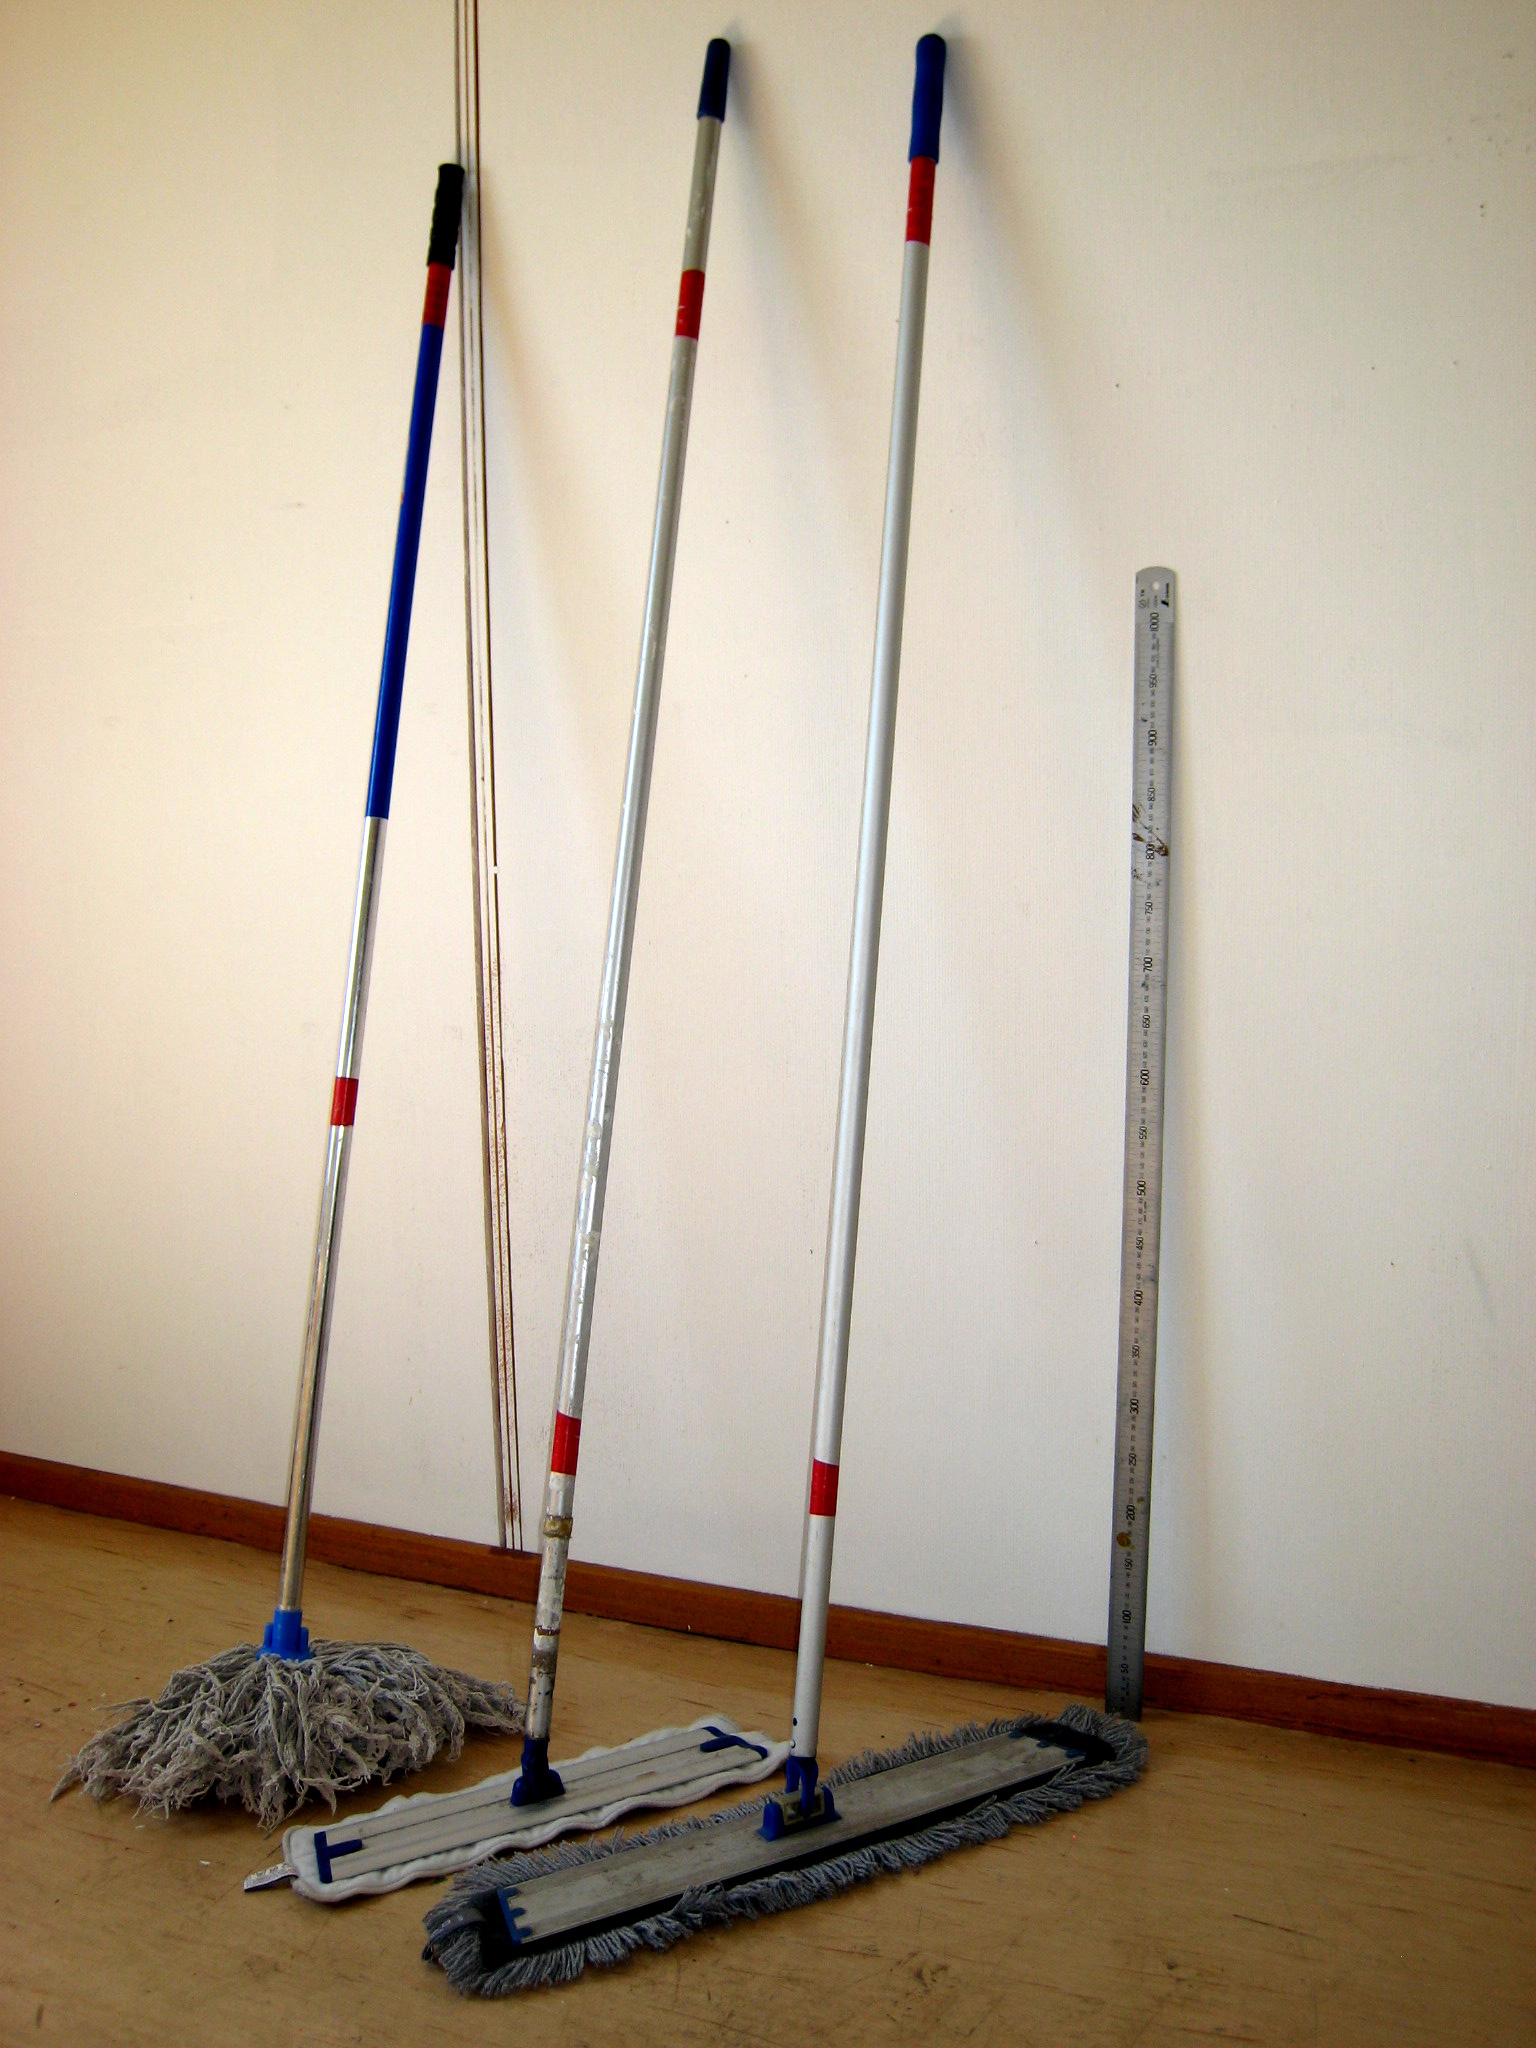 File:Mop, three different mop handles.jpg